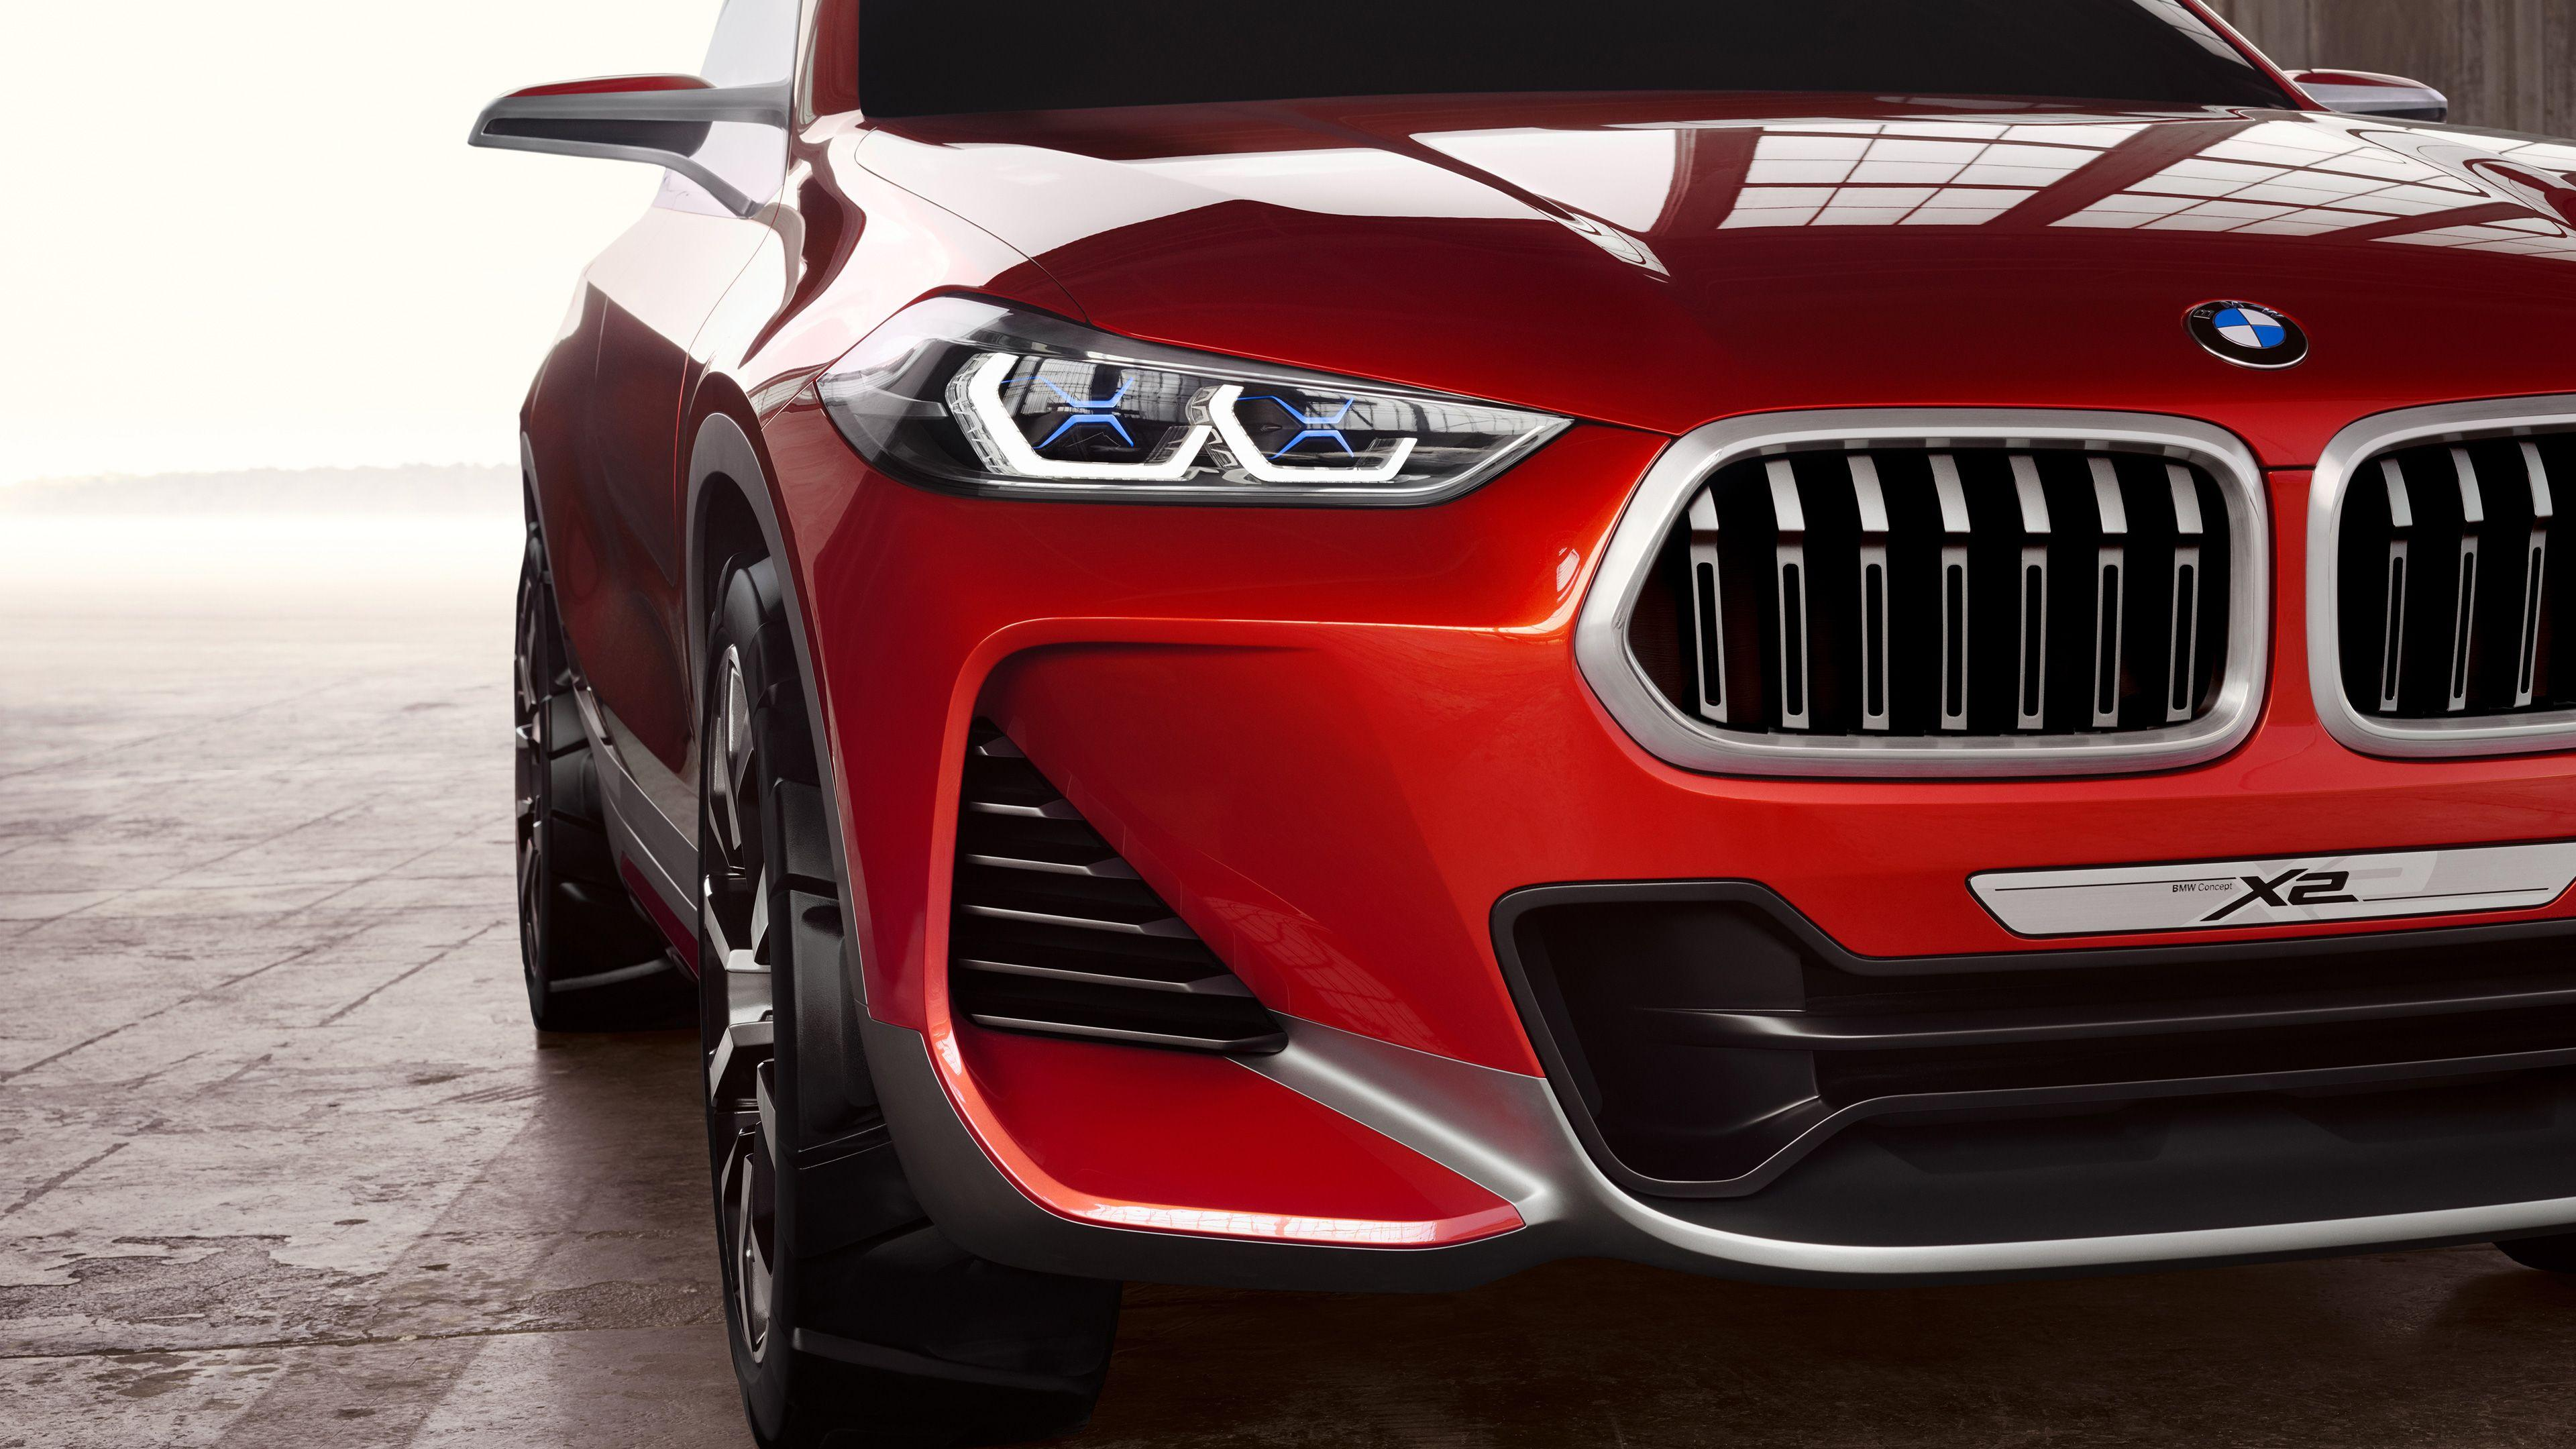 BMW X2 SUV Wallpapers